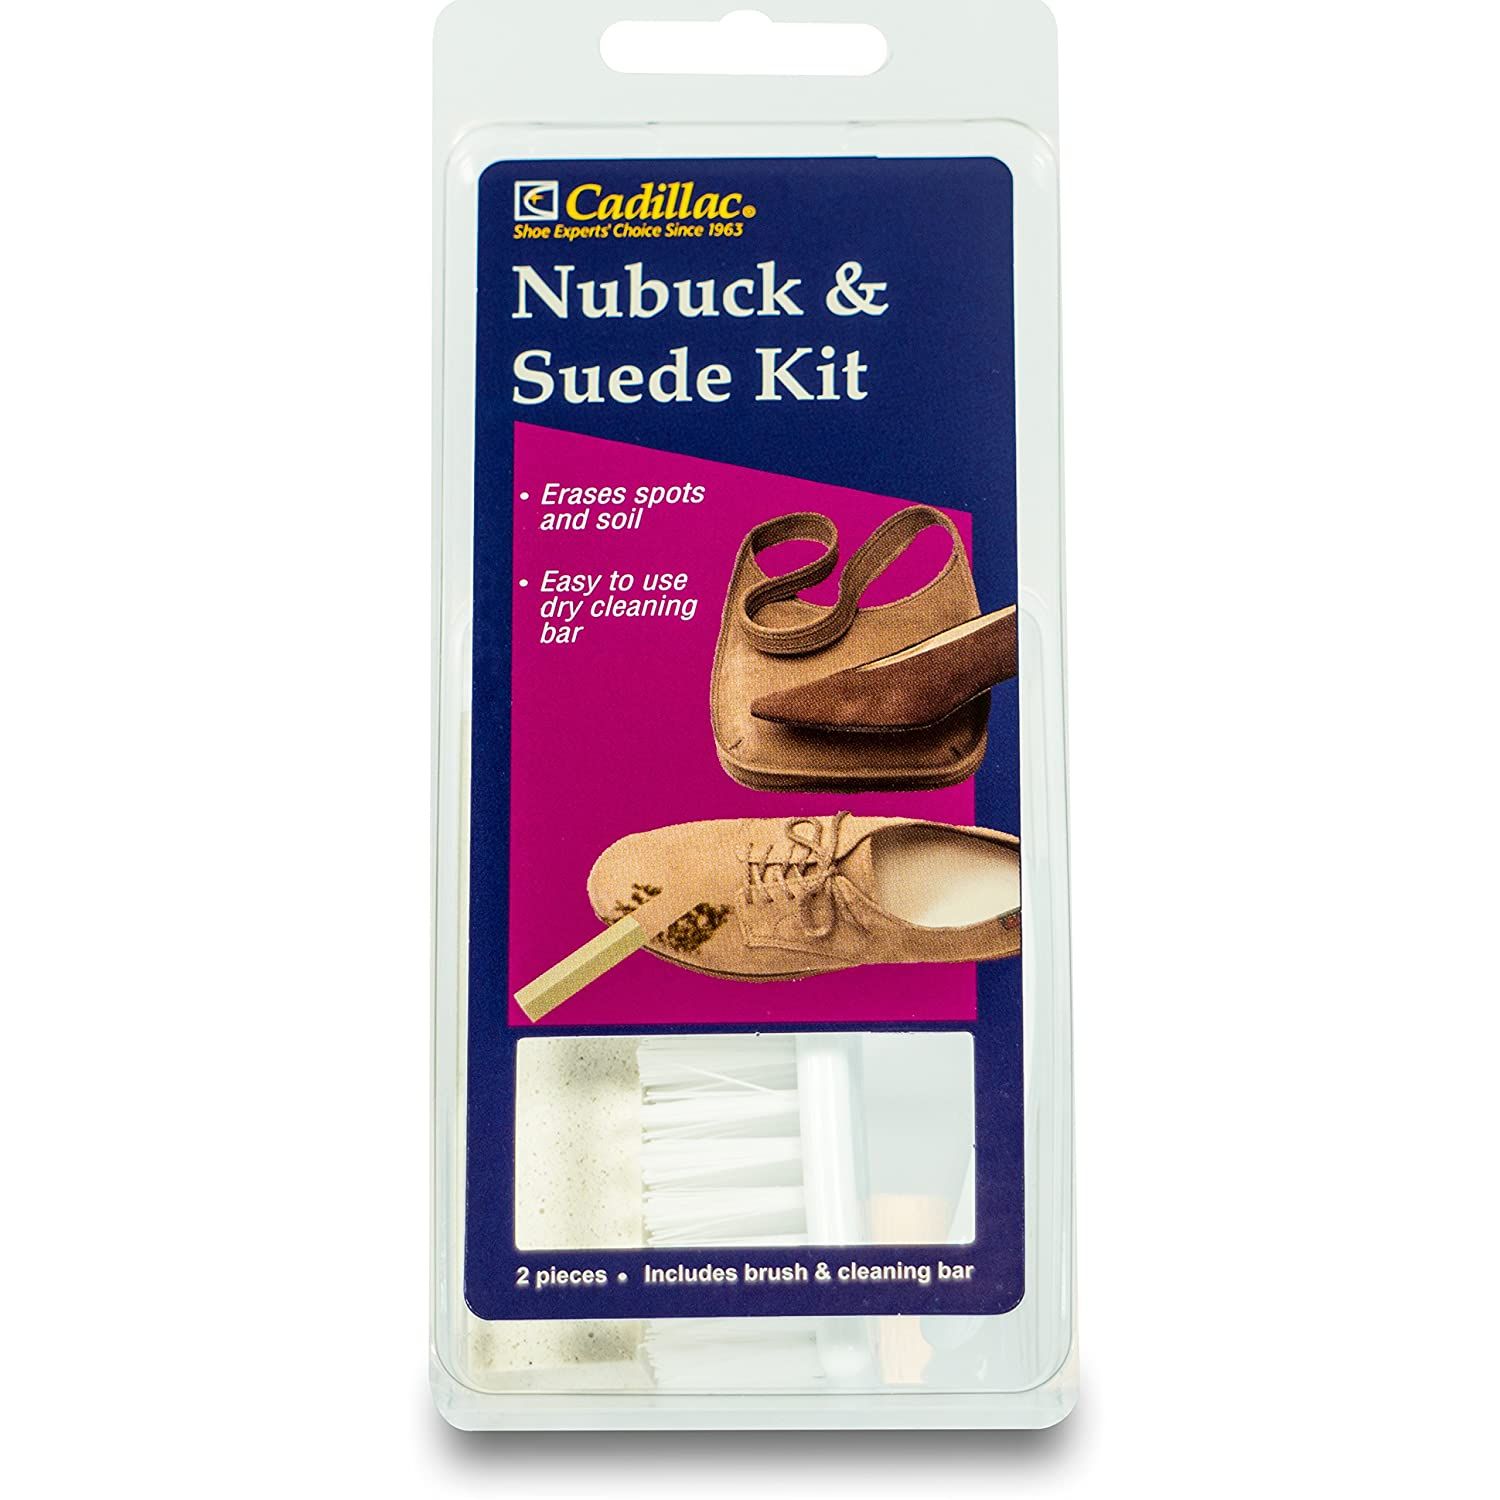 Cadillac Nubuck & Suede Kit Dry-Cleaning Eraser Brush! by Cadillac B004VN7KGE